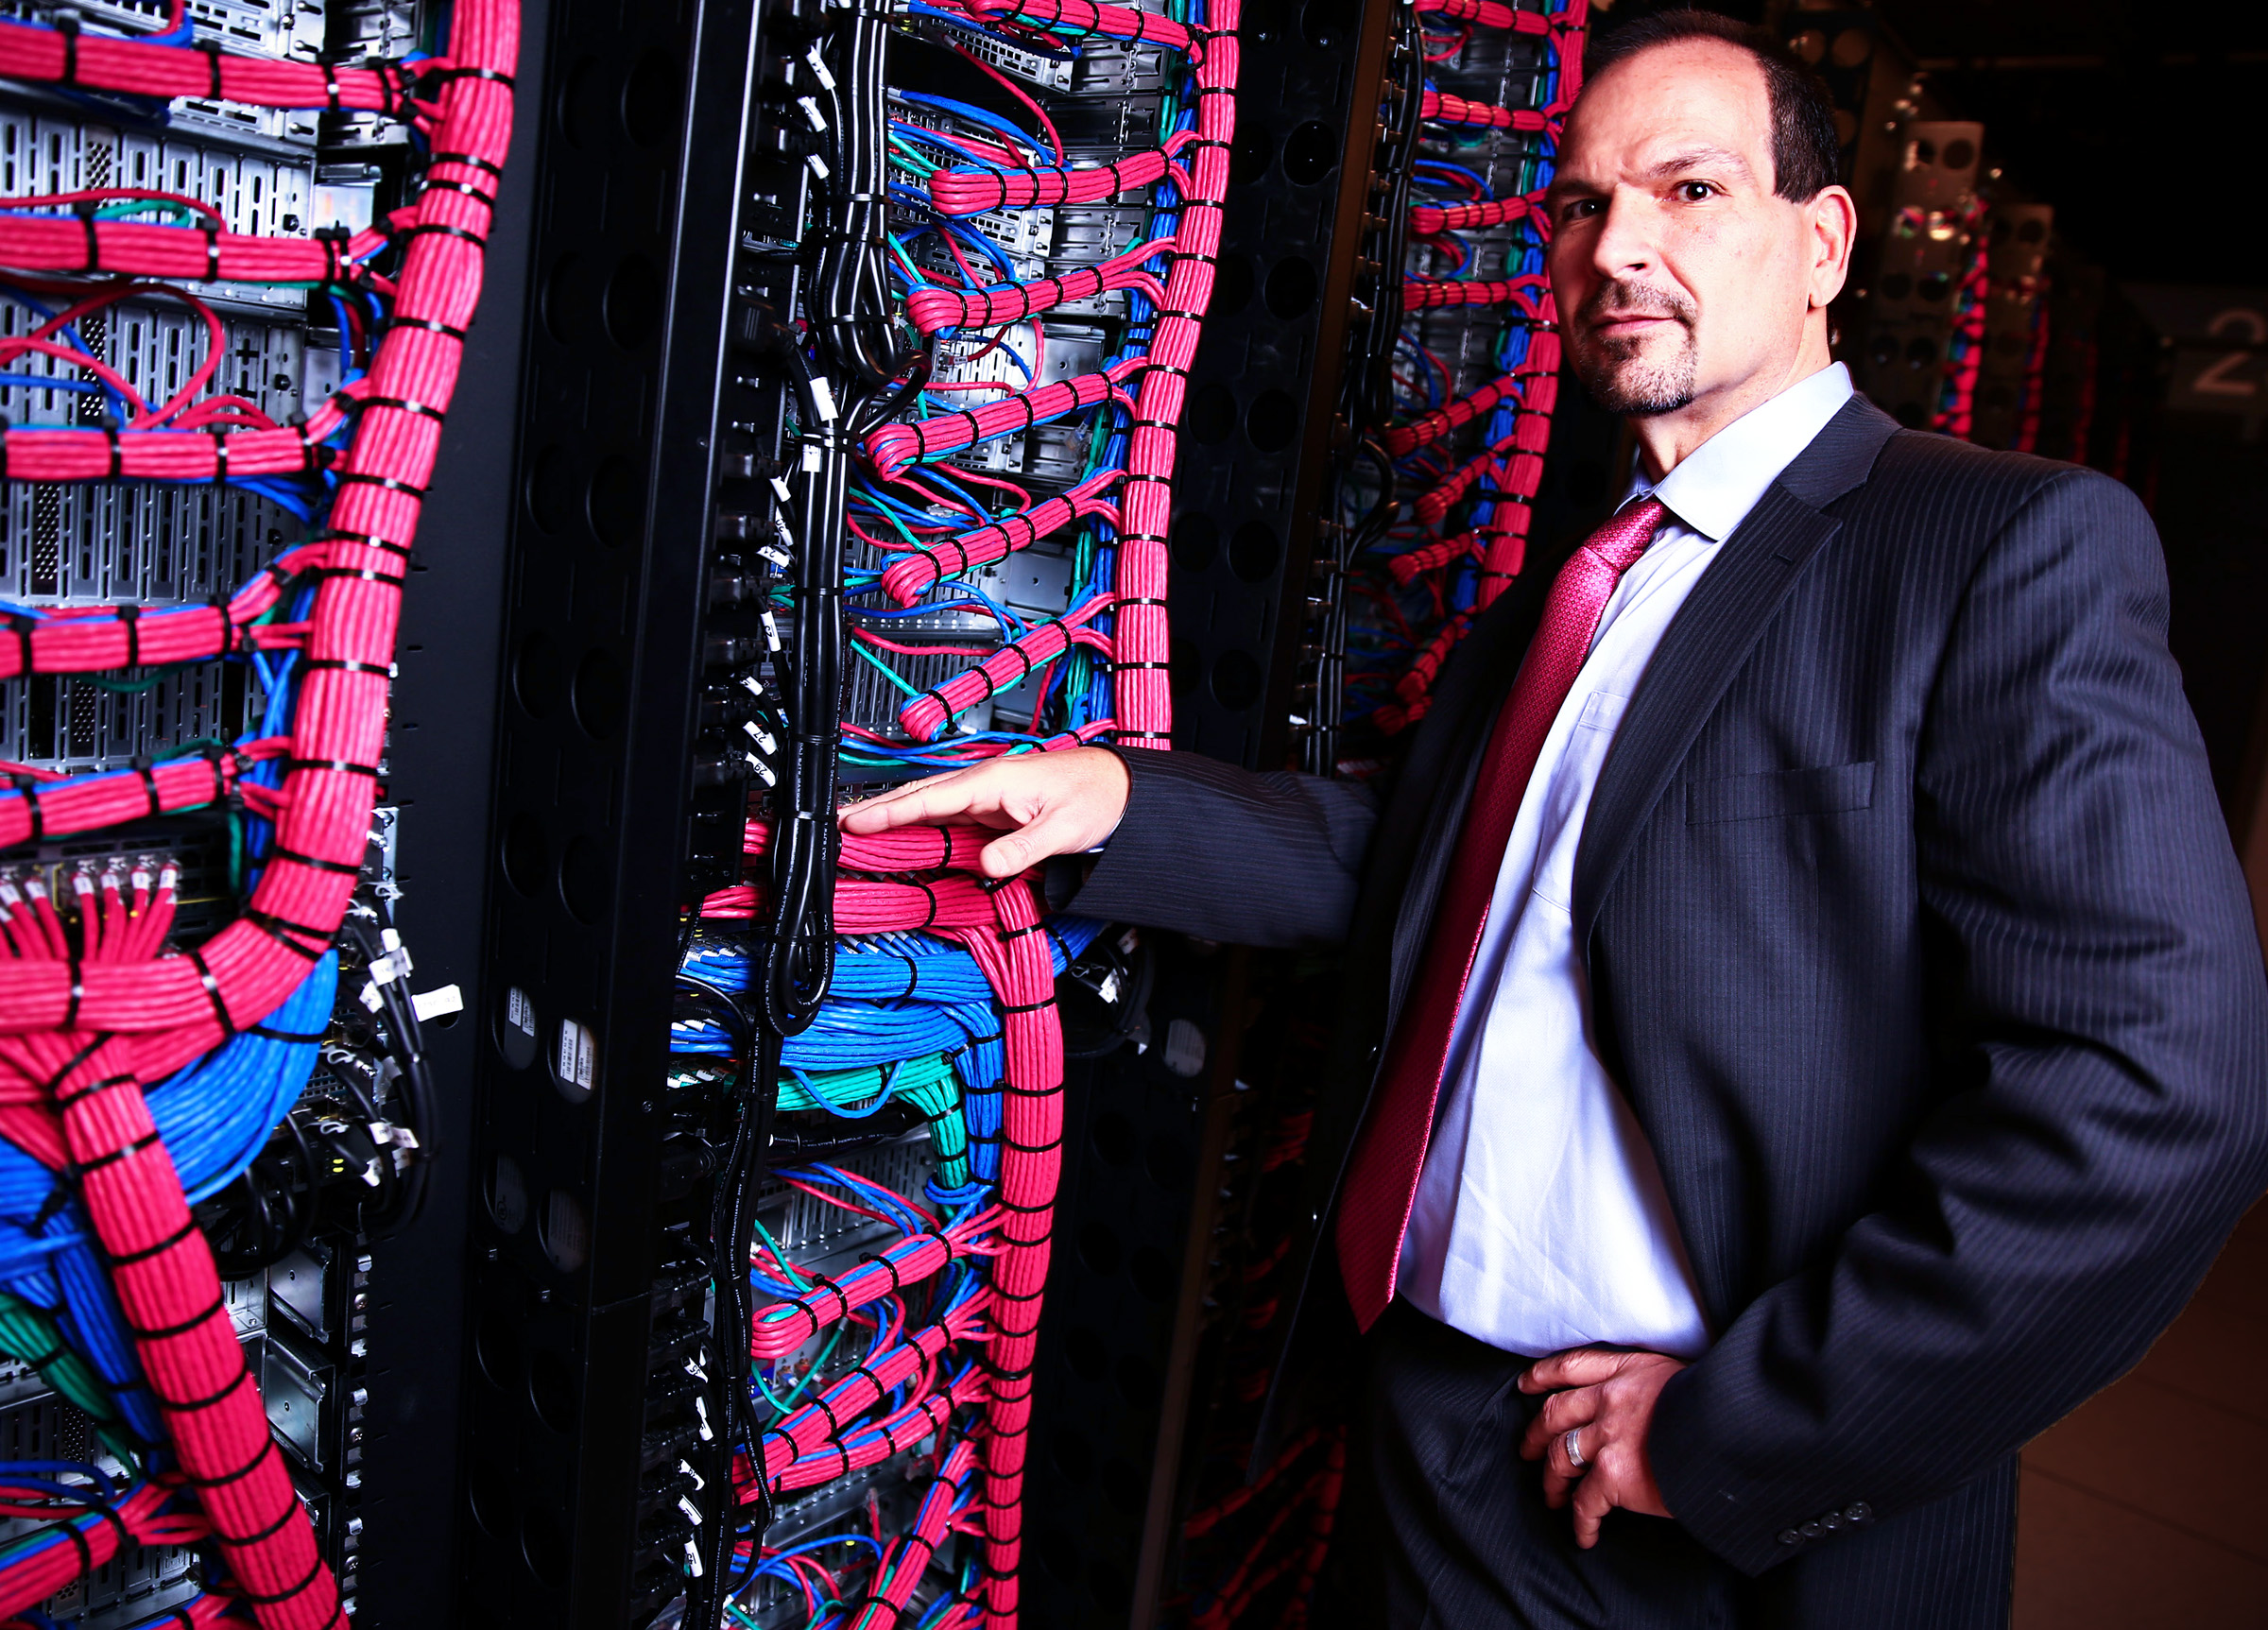 Lance Crosby, chief executive of IBM's SoftLayer cloud business, at the SoftLayer data center in Dallas.